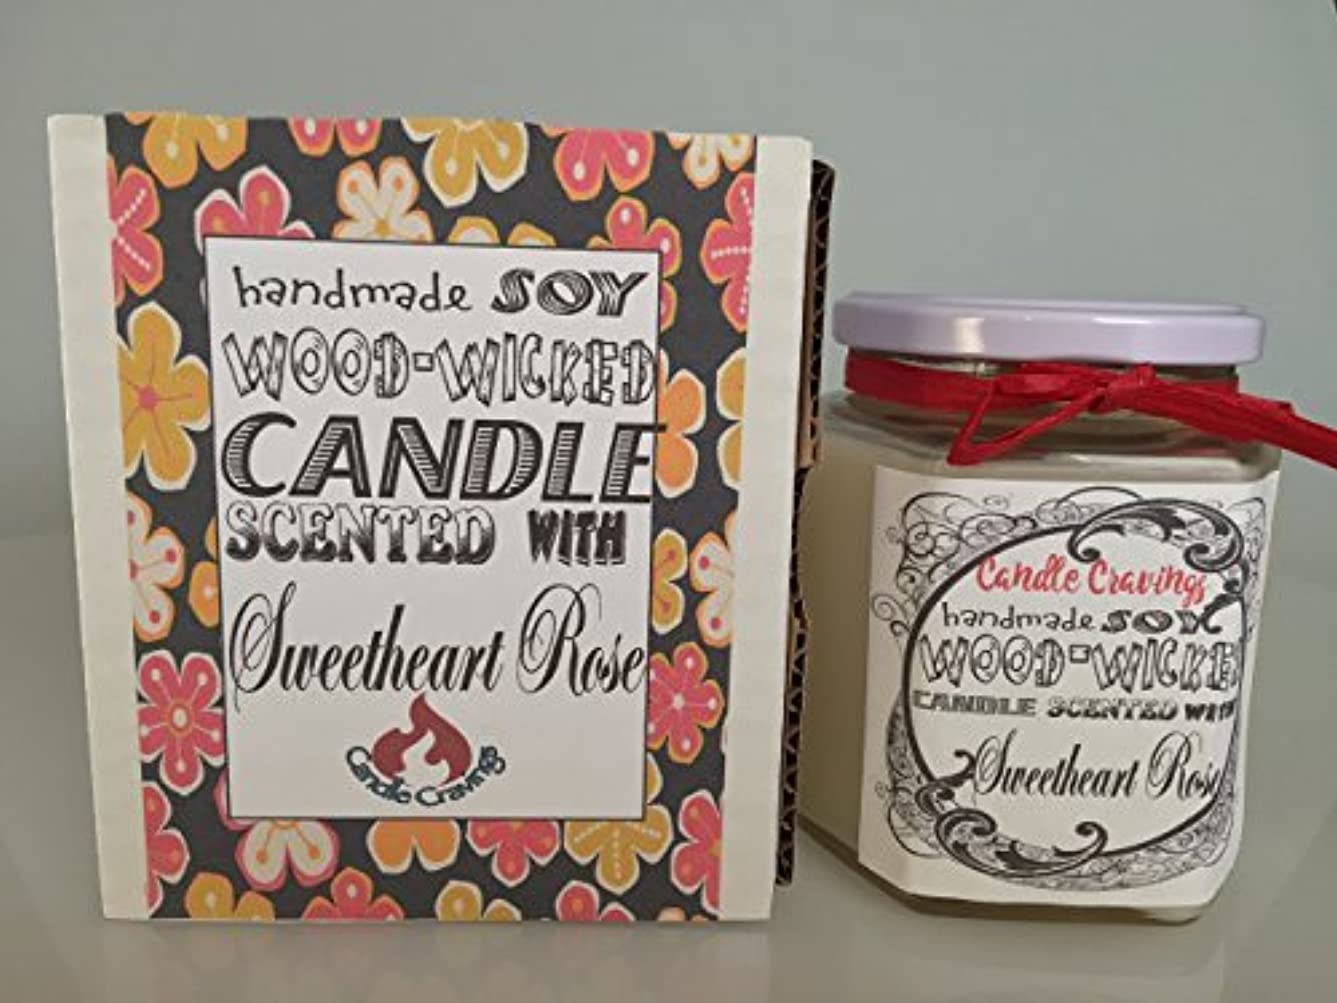 必要としている教科書コピーSweetheart Roses Scented Soy Wax Container Candle With Wood Wick 12 Oz US Handmade [並行輸入品]